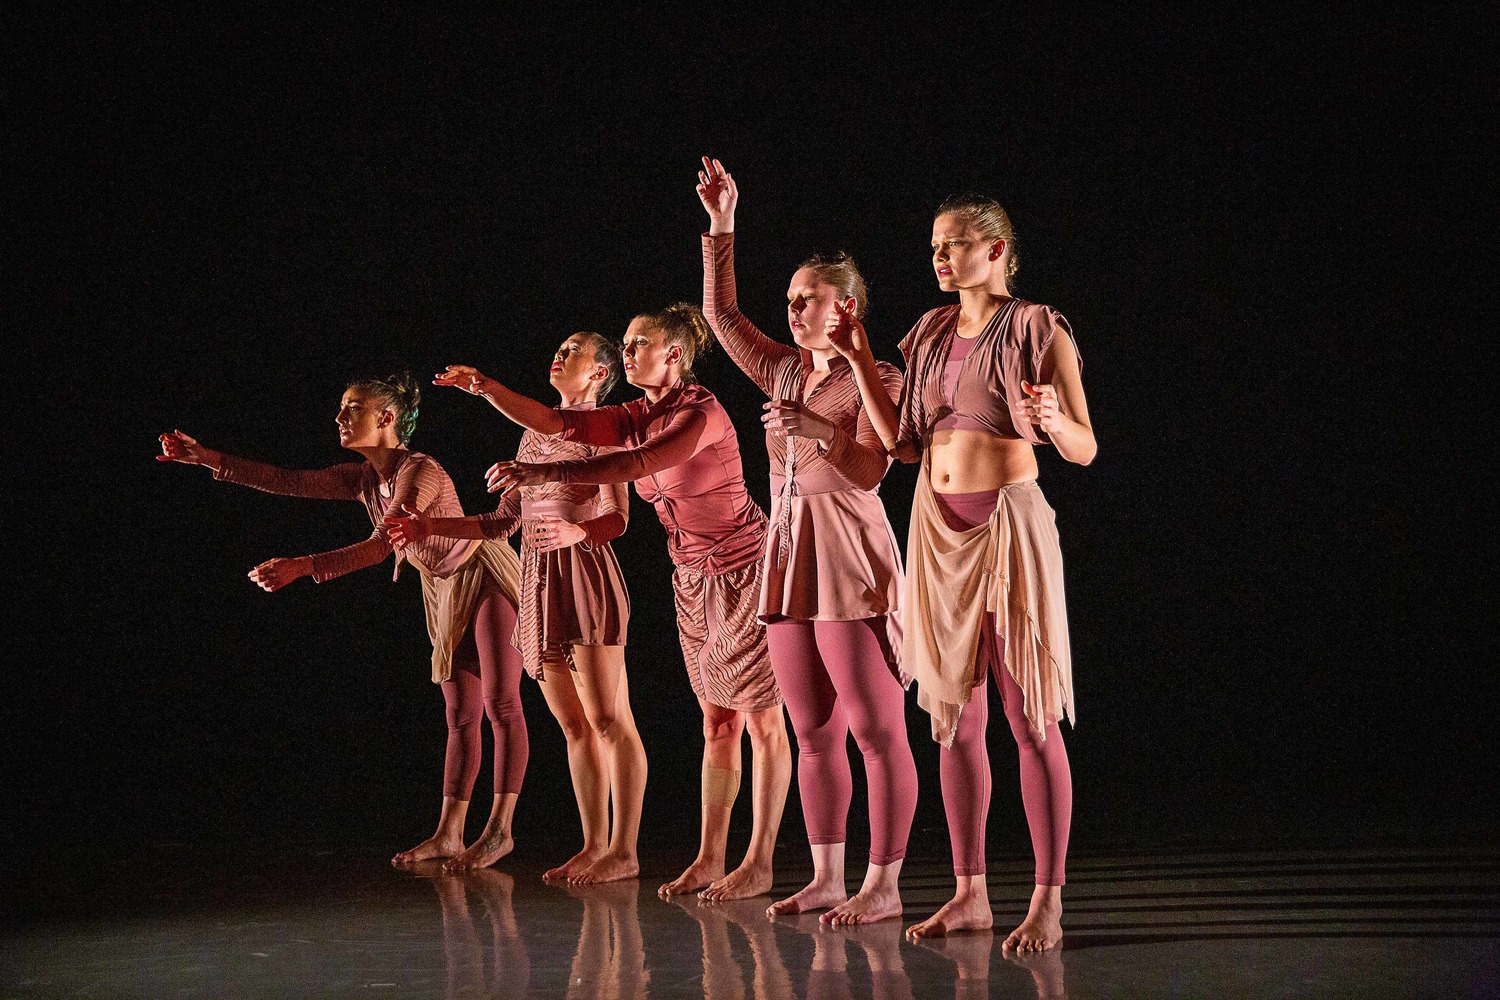 Ariel Rivka Dance Comes To Baruch Performing Arts Center